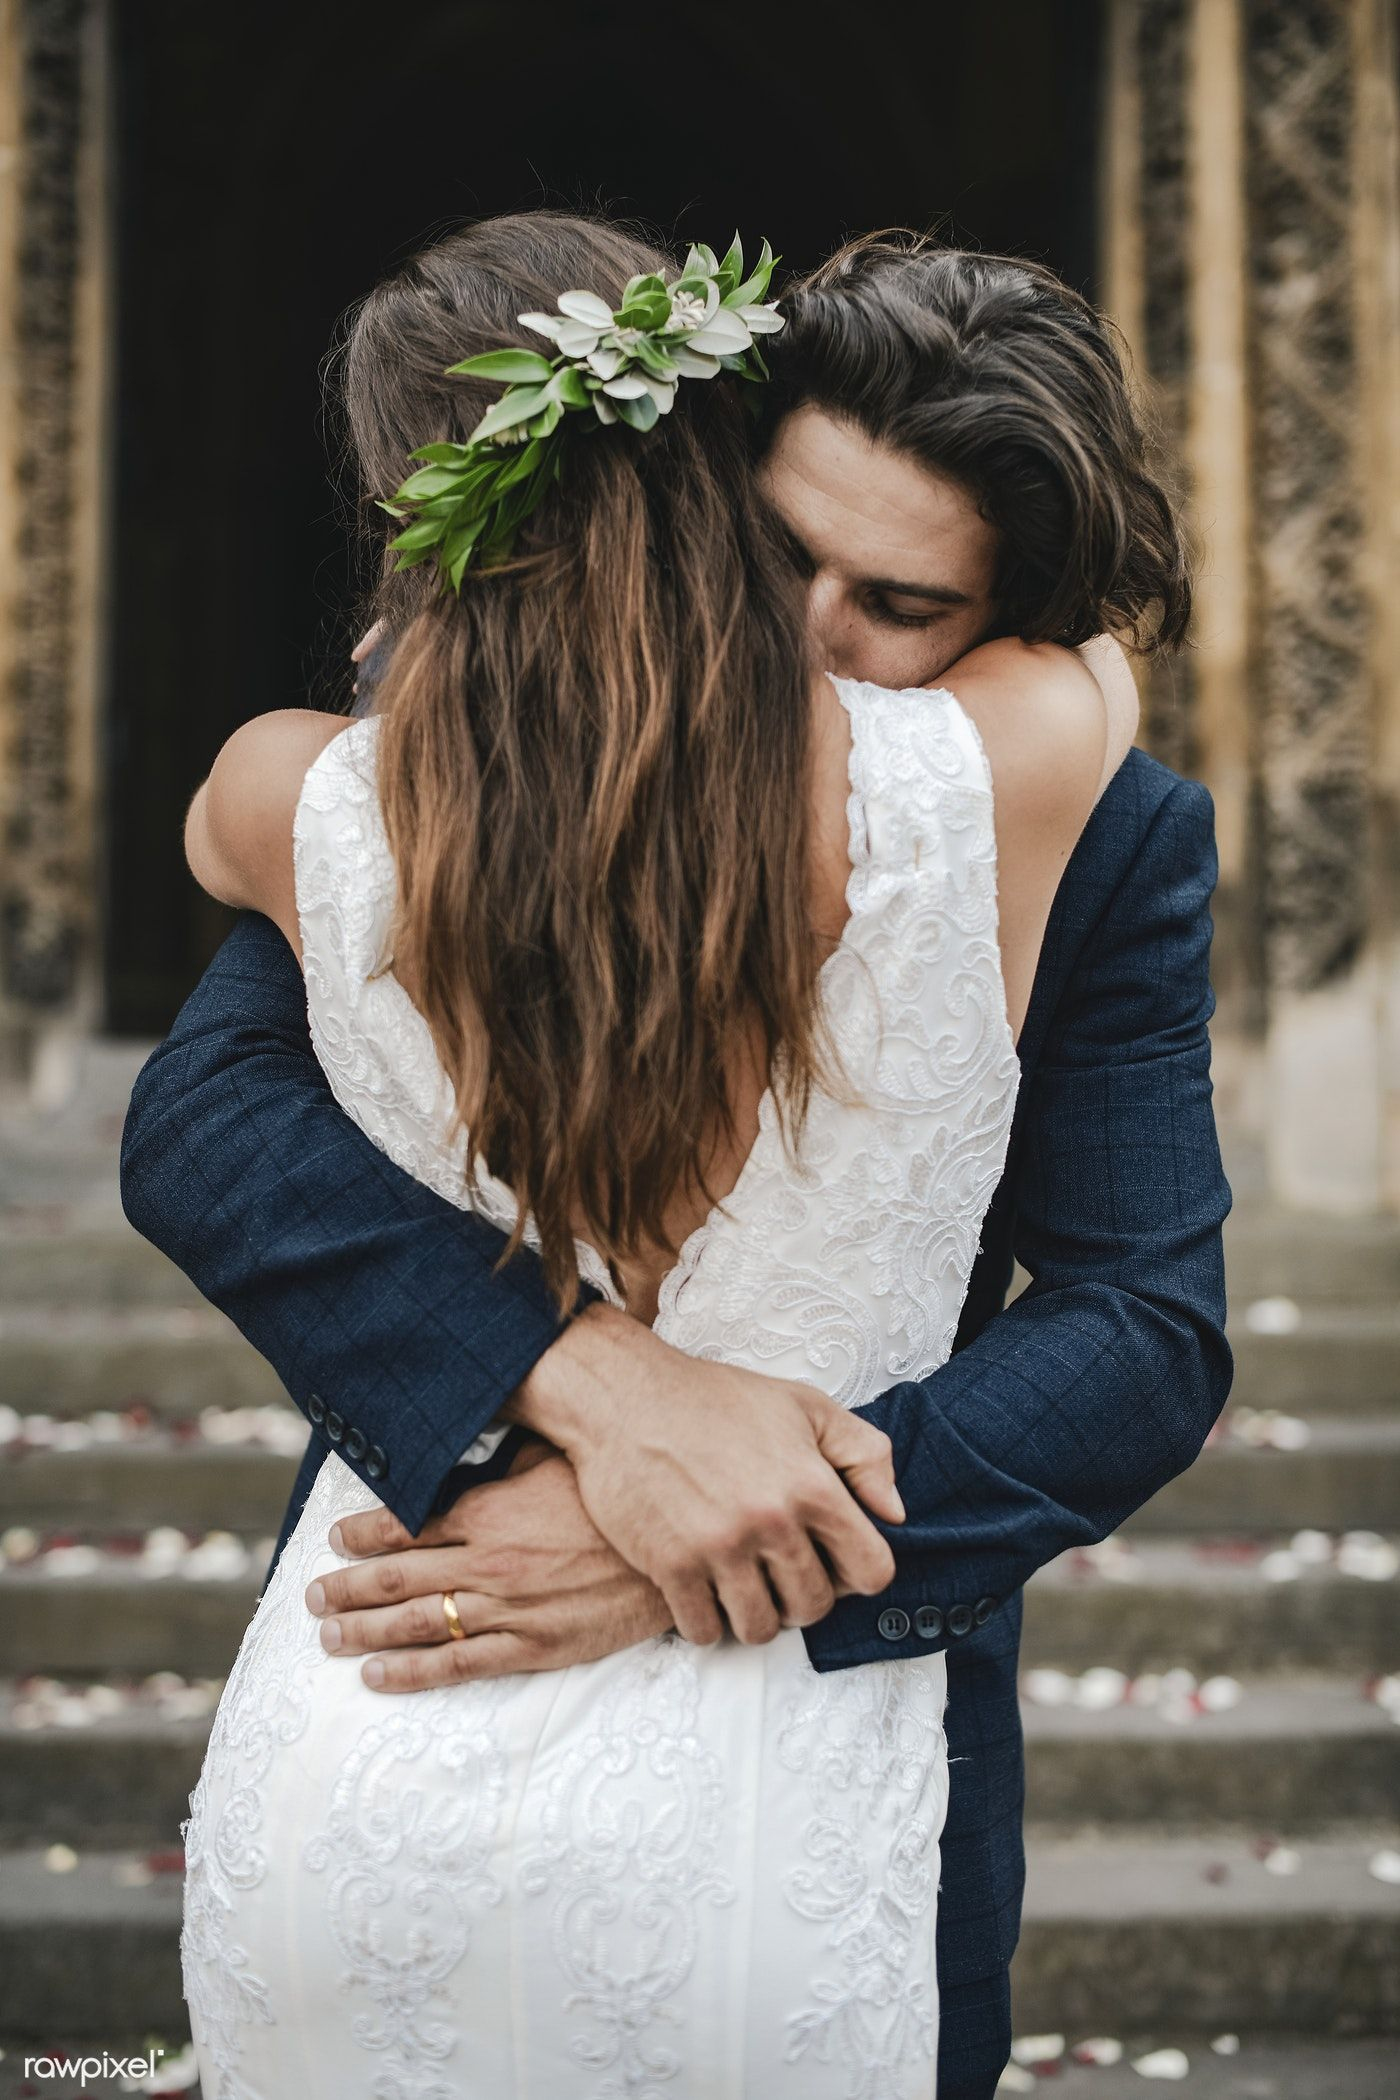 Download Premium Photo Of Newly Wed Couple In Love 526888